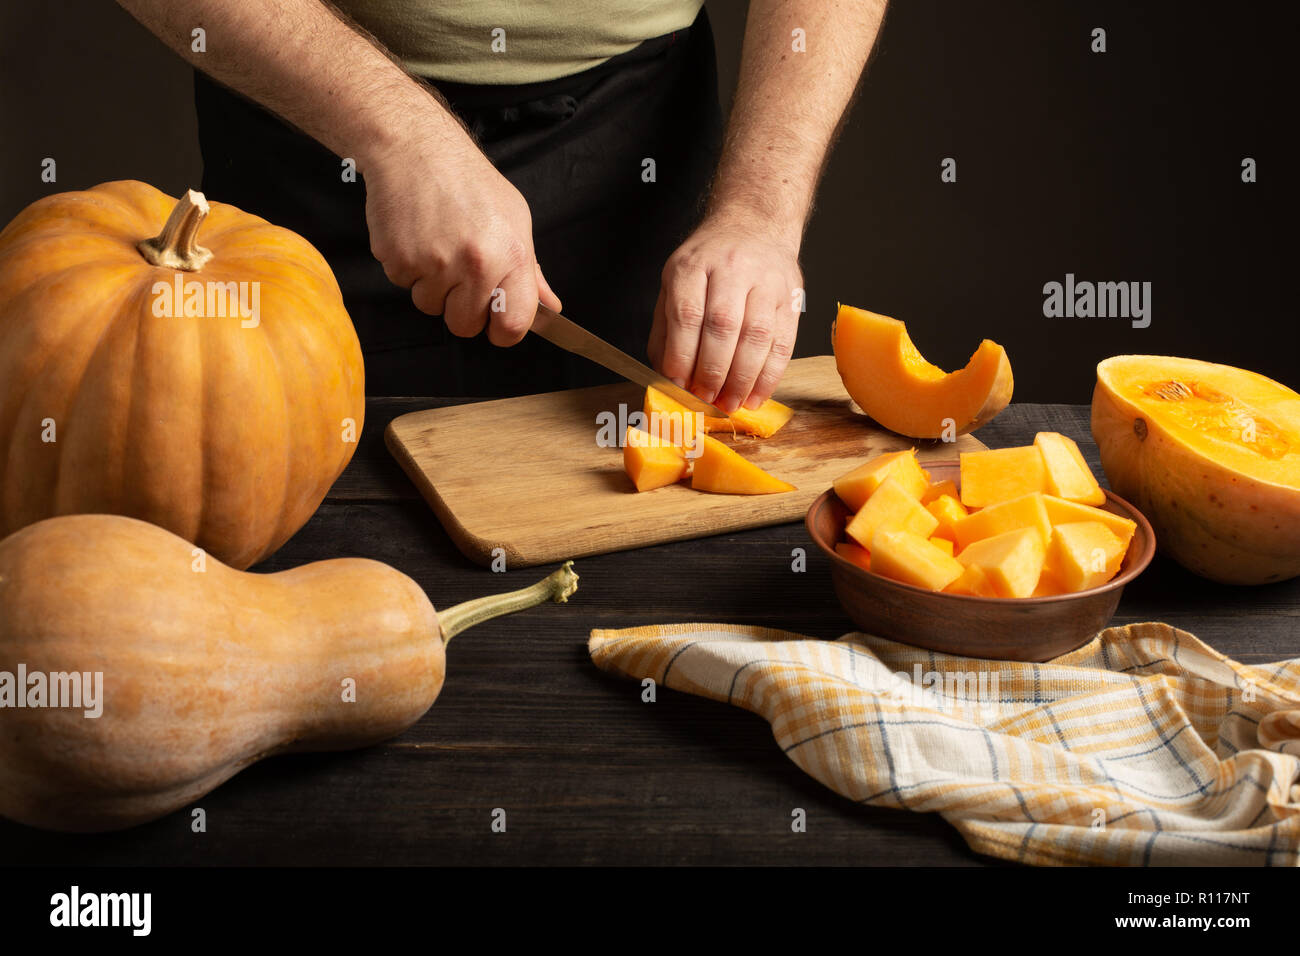 The cook slices the pumpkin for baking. On a black wooden table are whole pumpkins of different sizes. - Stock Image